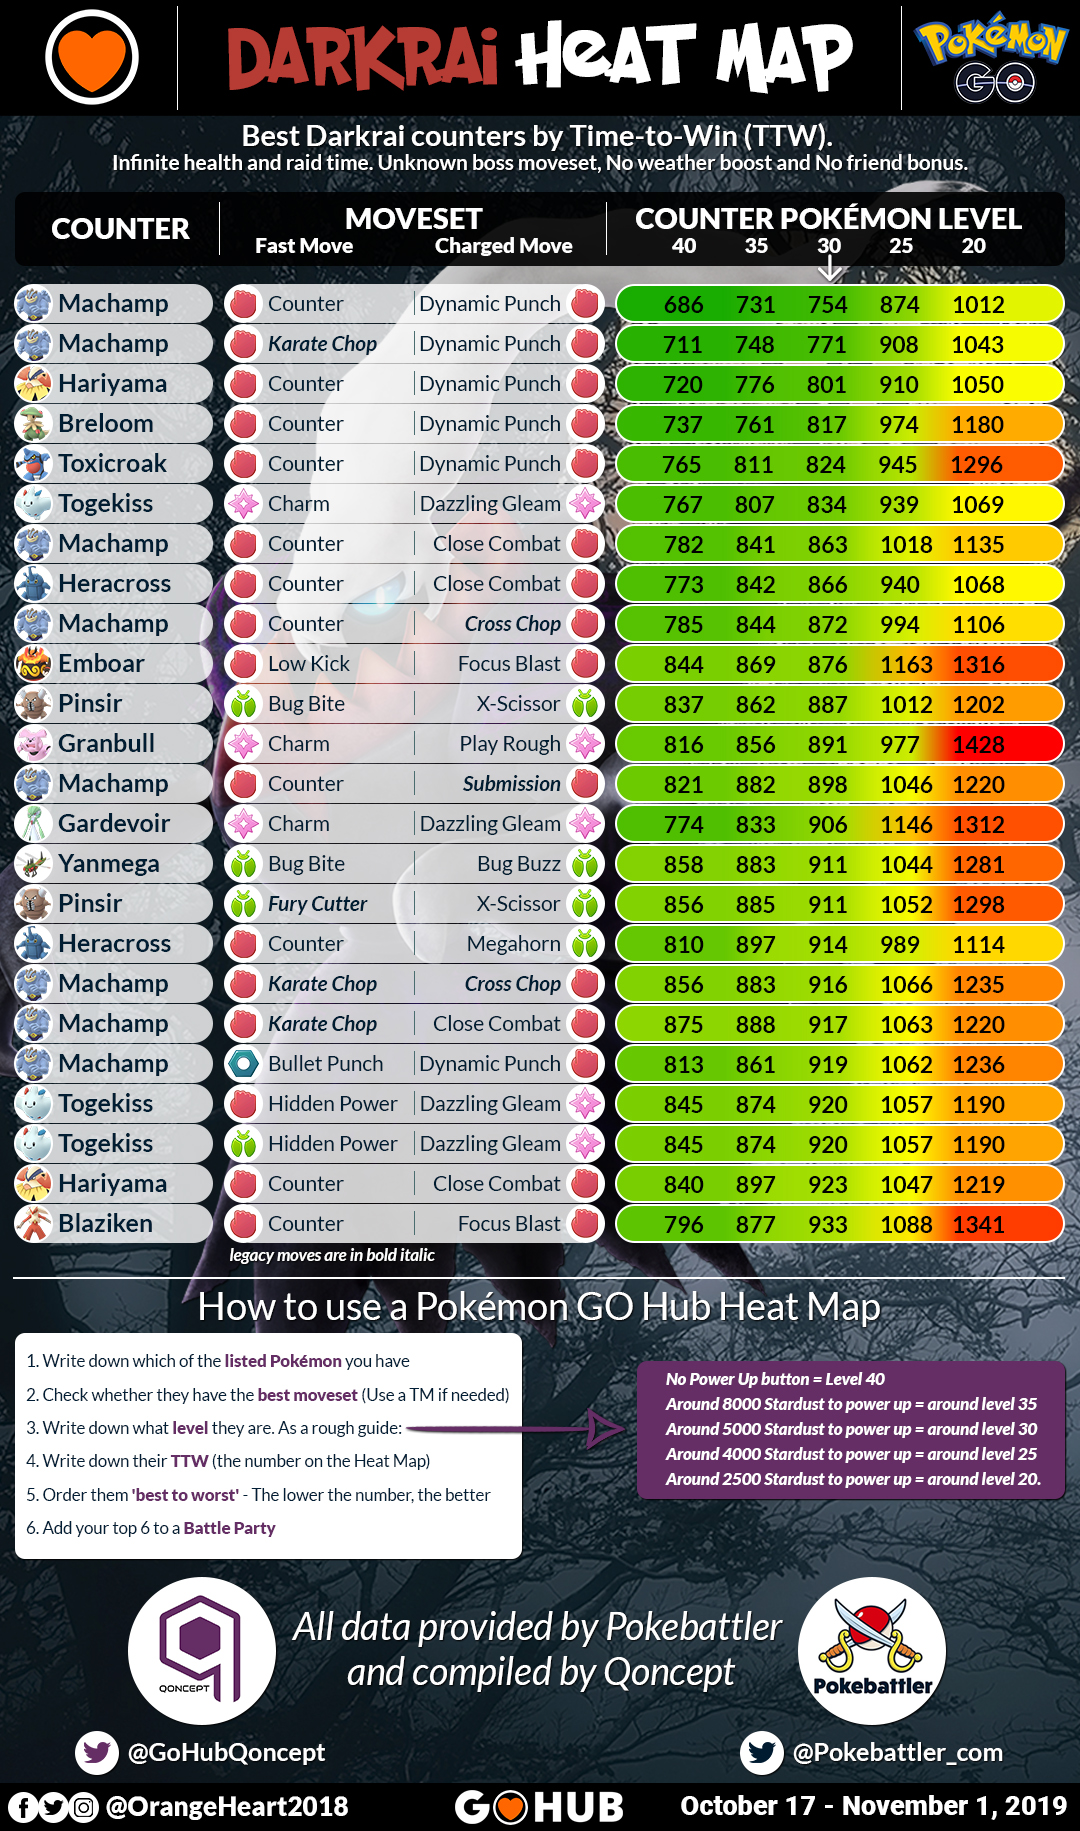 Darkrai heat map - counters ordered by TTW at level 30